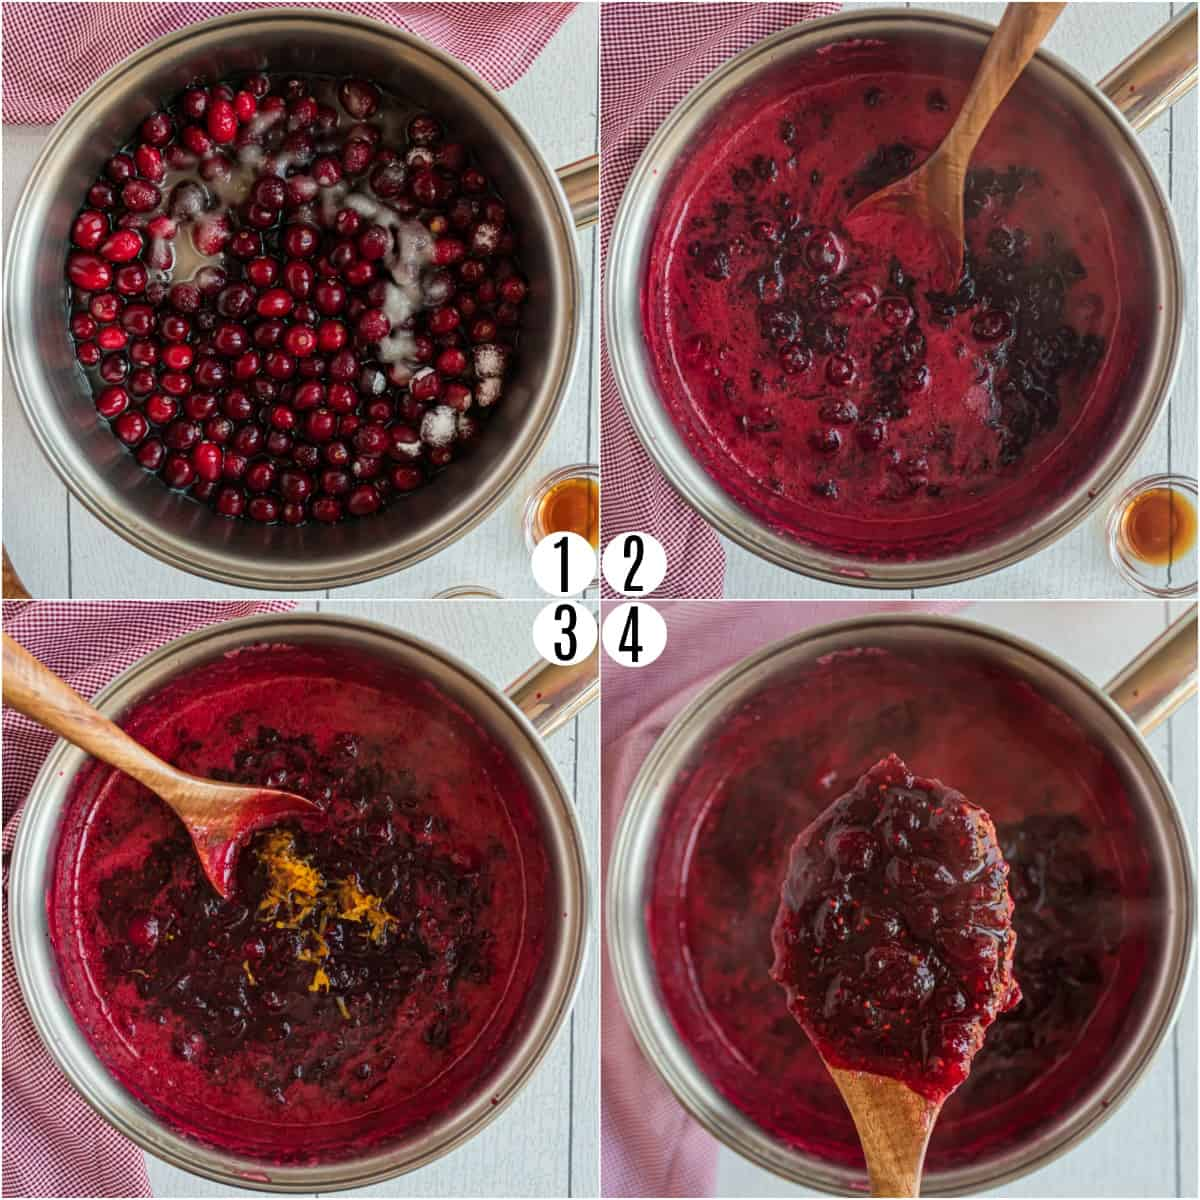 Step by step photos showing how to make cranberry sauce from scratch.